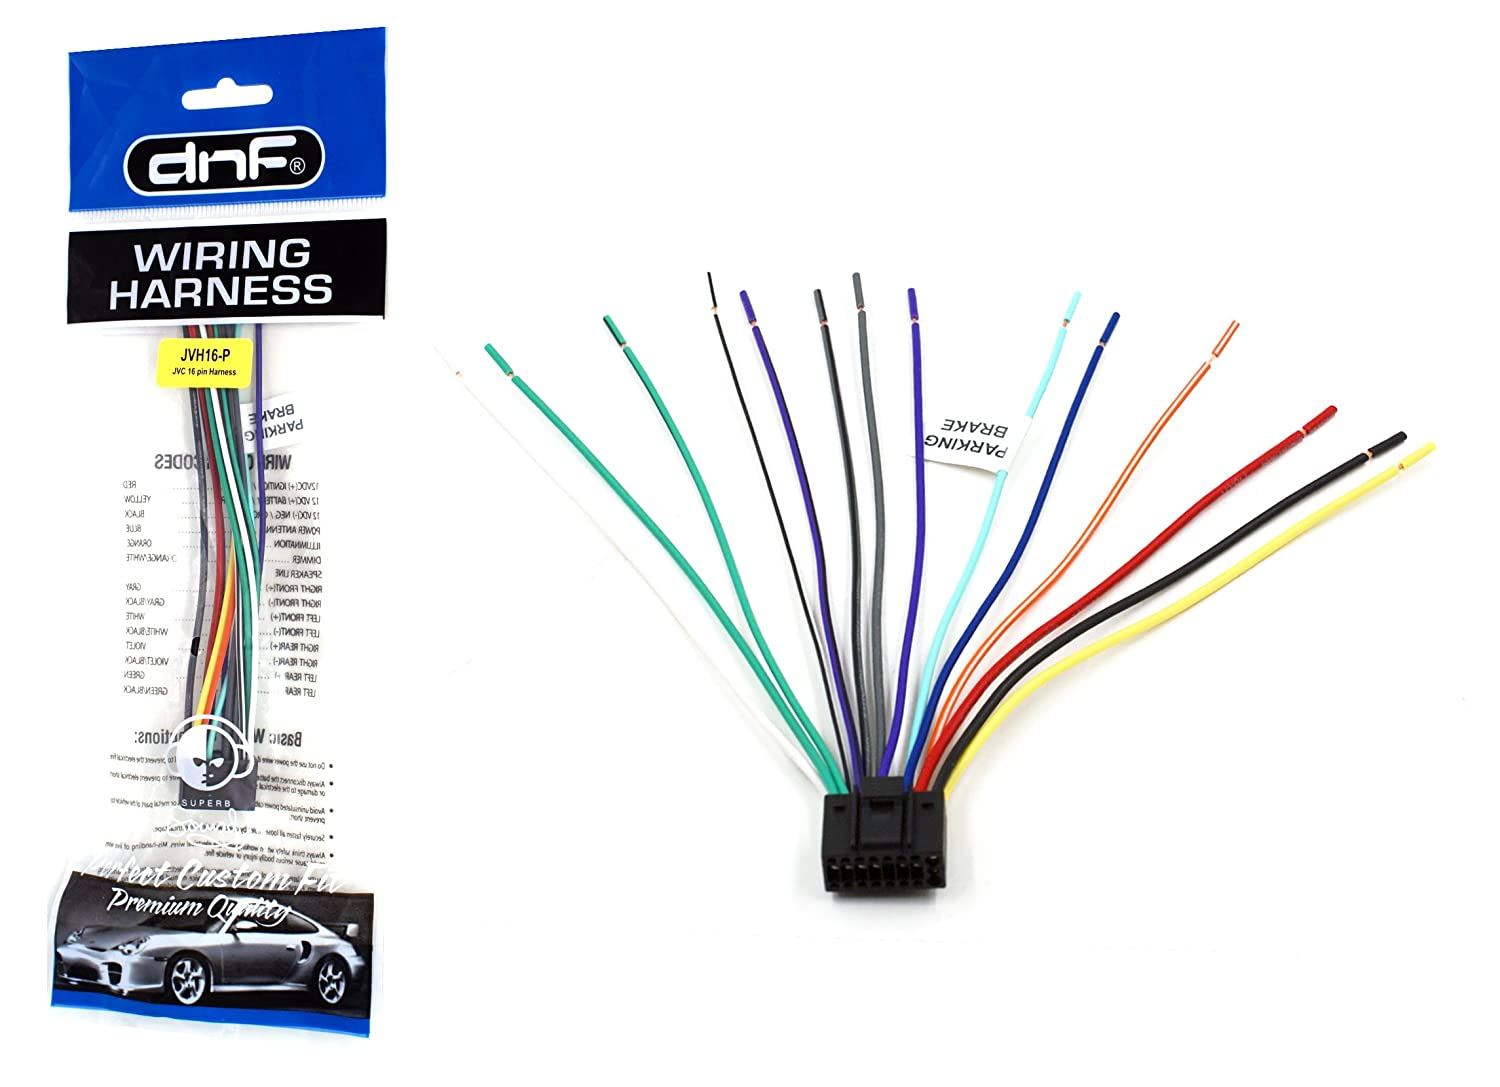 Tech Lowrance Wiring Diagrams Guide And Troubleshooting Of Diagram For Structure Scan Jvc Kw Xs68 Harness 26 Images Nmea 2000